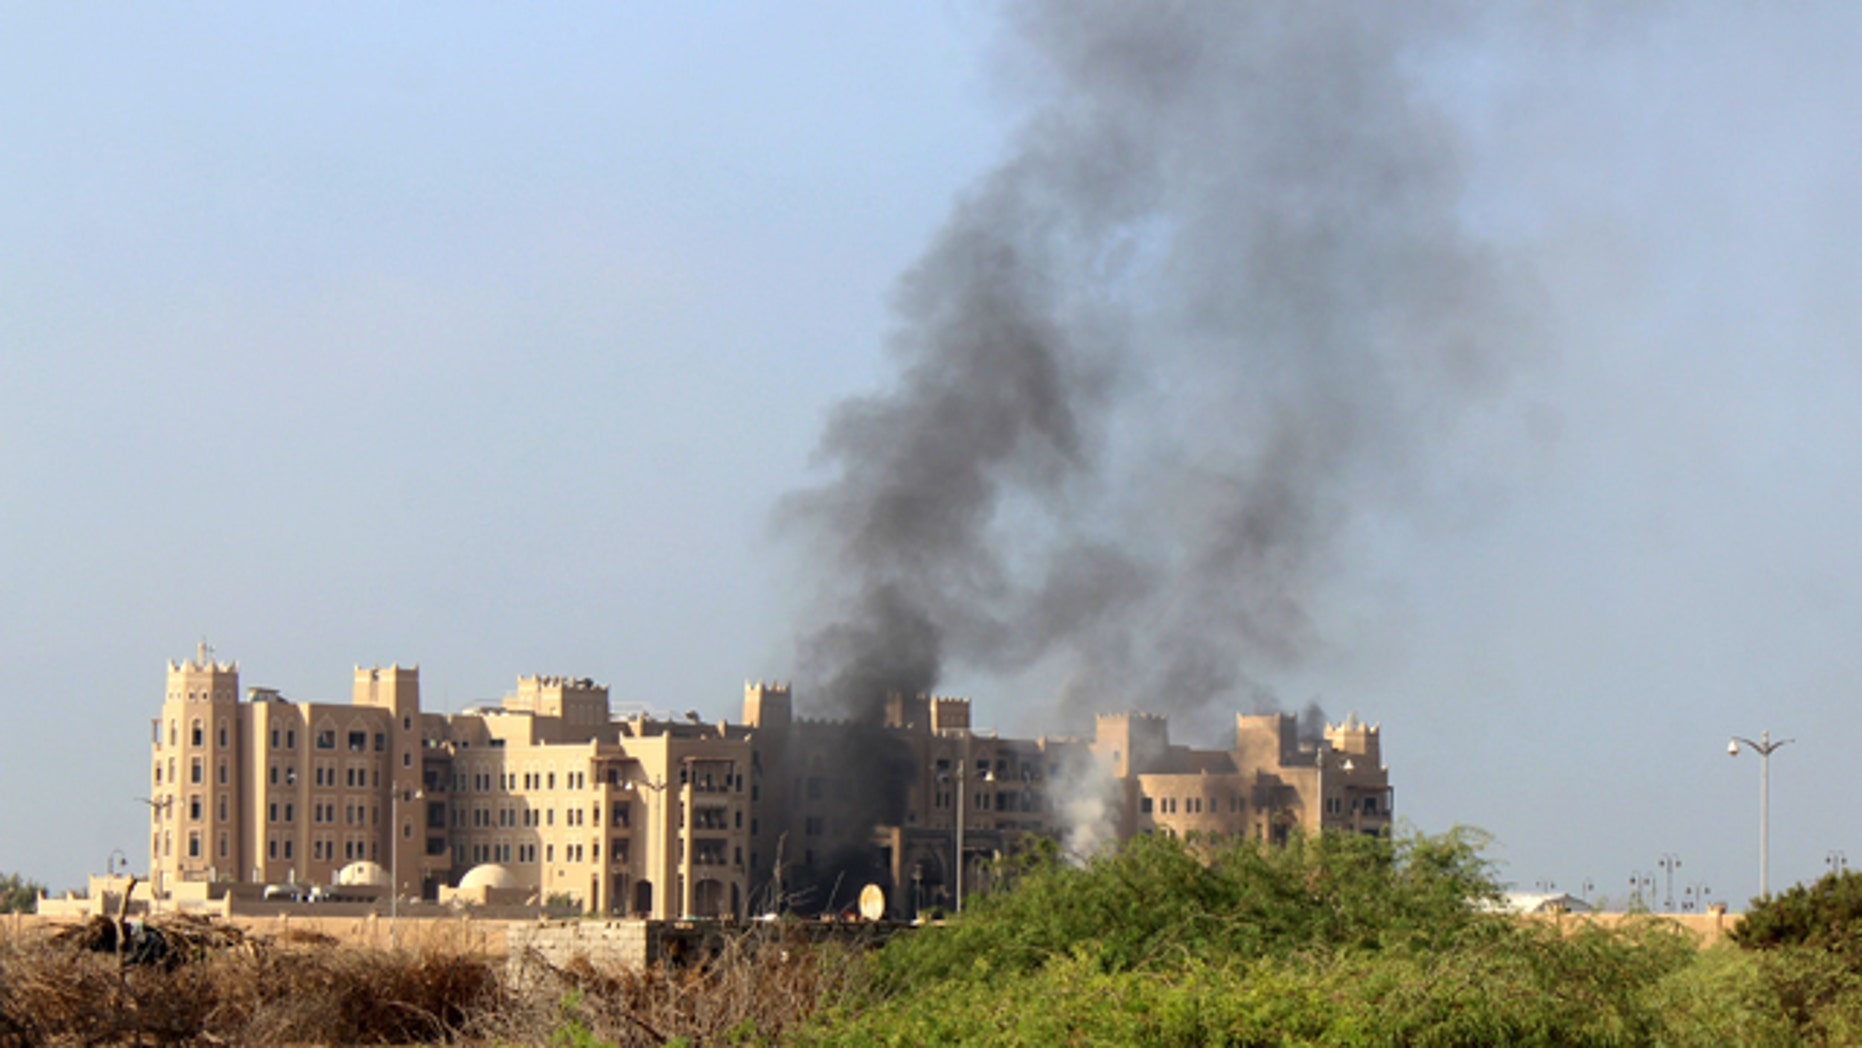 Oct. 6, 2015: Smoke rises following an explosion that hit Hotel al-Qasr where Cabinet members and other government officials are staying, in the southern port city of Aden, Yemen. Security officials, who work for Yemen's internationally recognized government said three explosions have hit Aden and there are casualties in Tuesday's explosions but they had no specifics or details. (AP Photo/Wael Qubady)